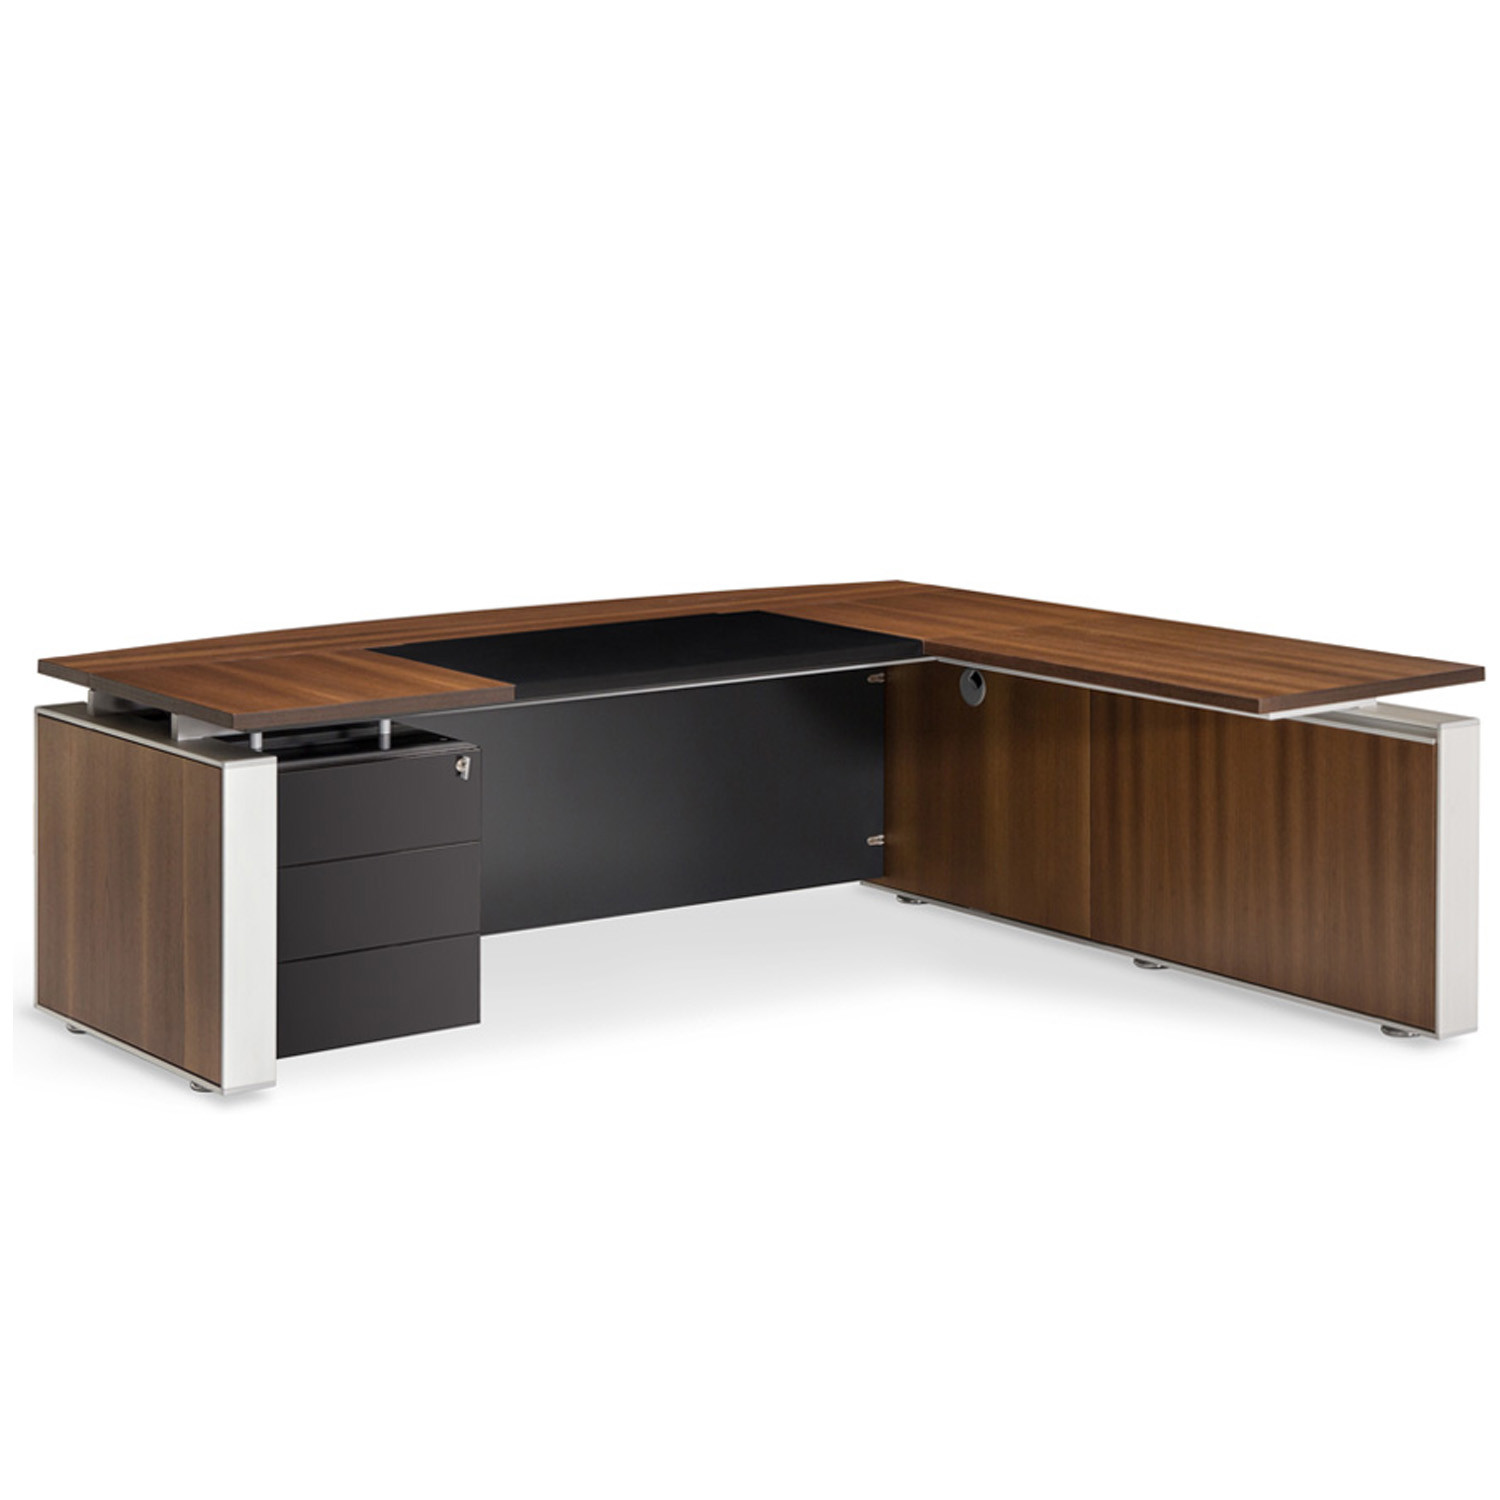 Swami L-Shaped Executive Desk